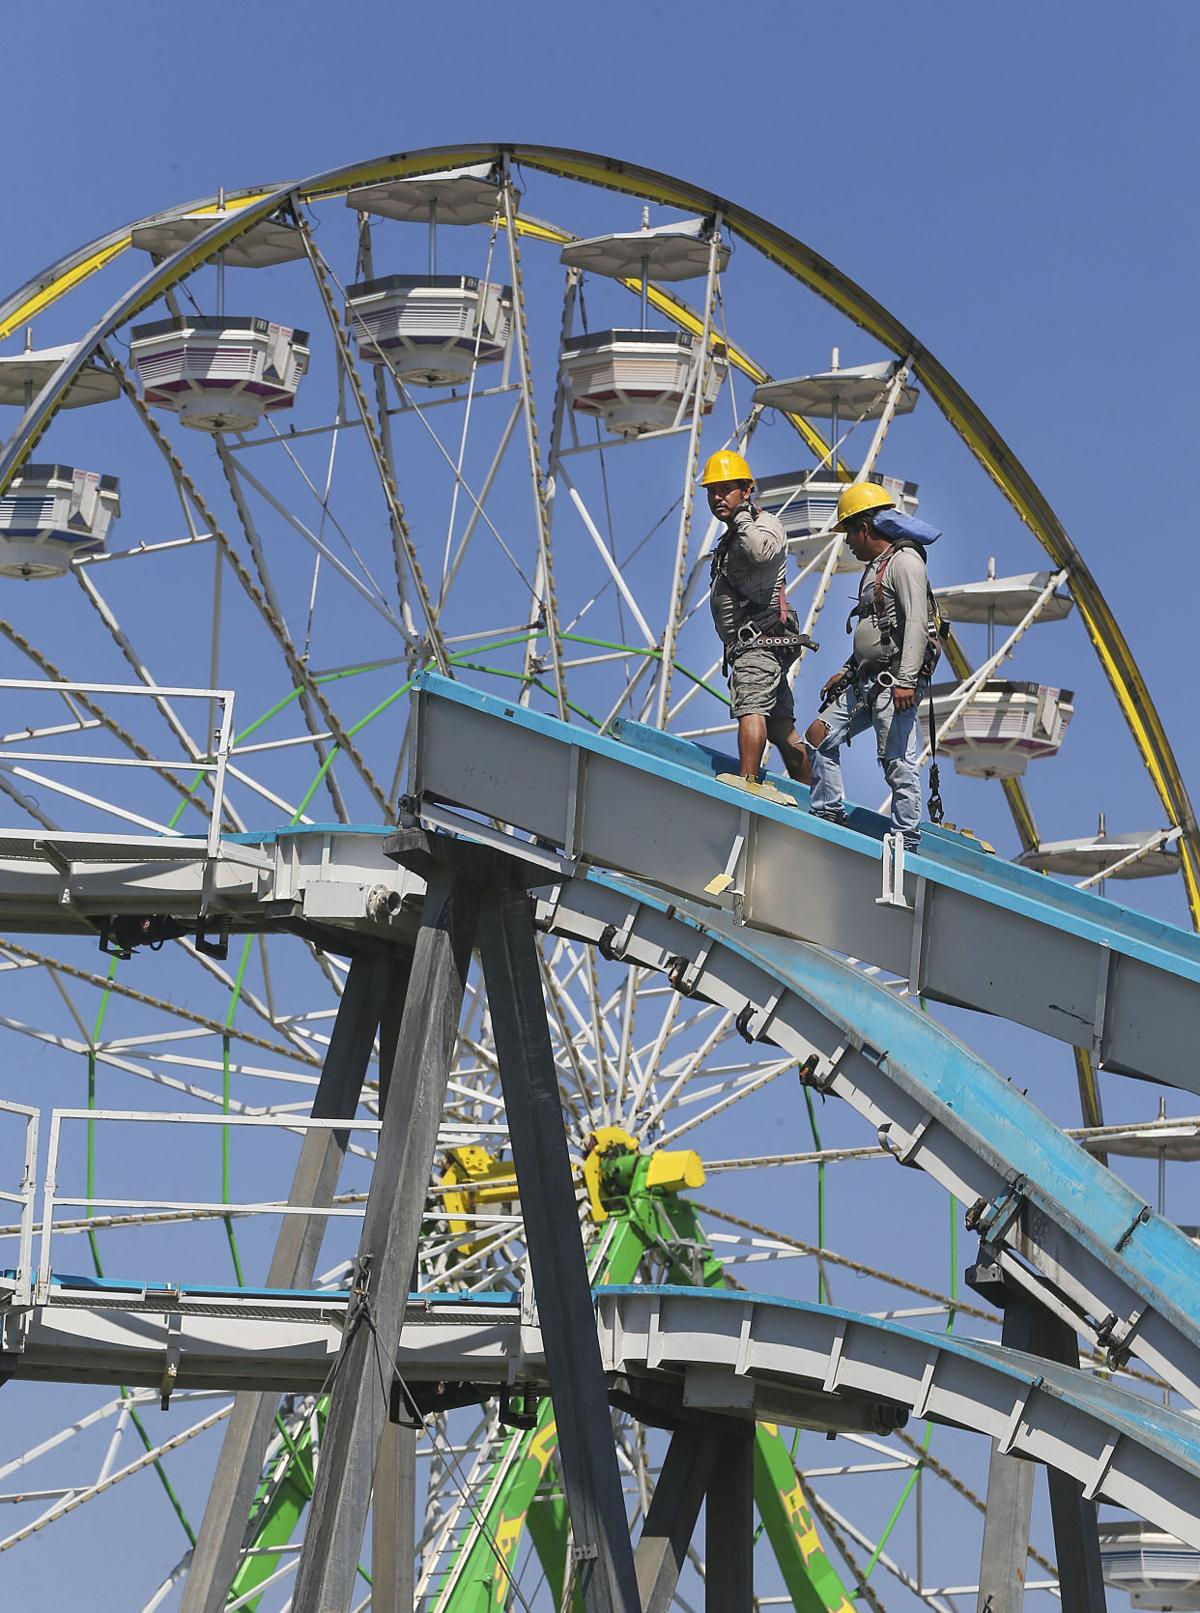 Belles to bovines: What\'s new at the Kern County Fair? | Kern County ...